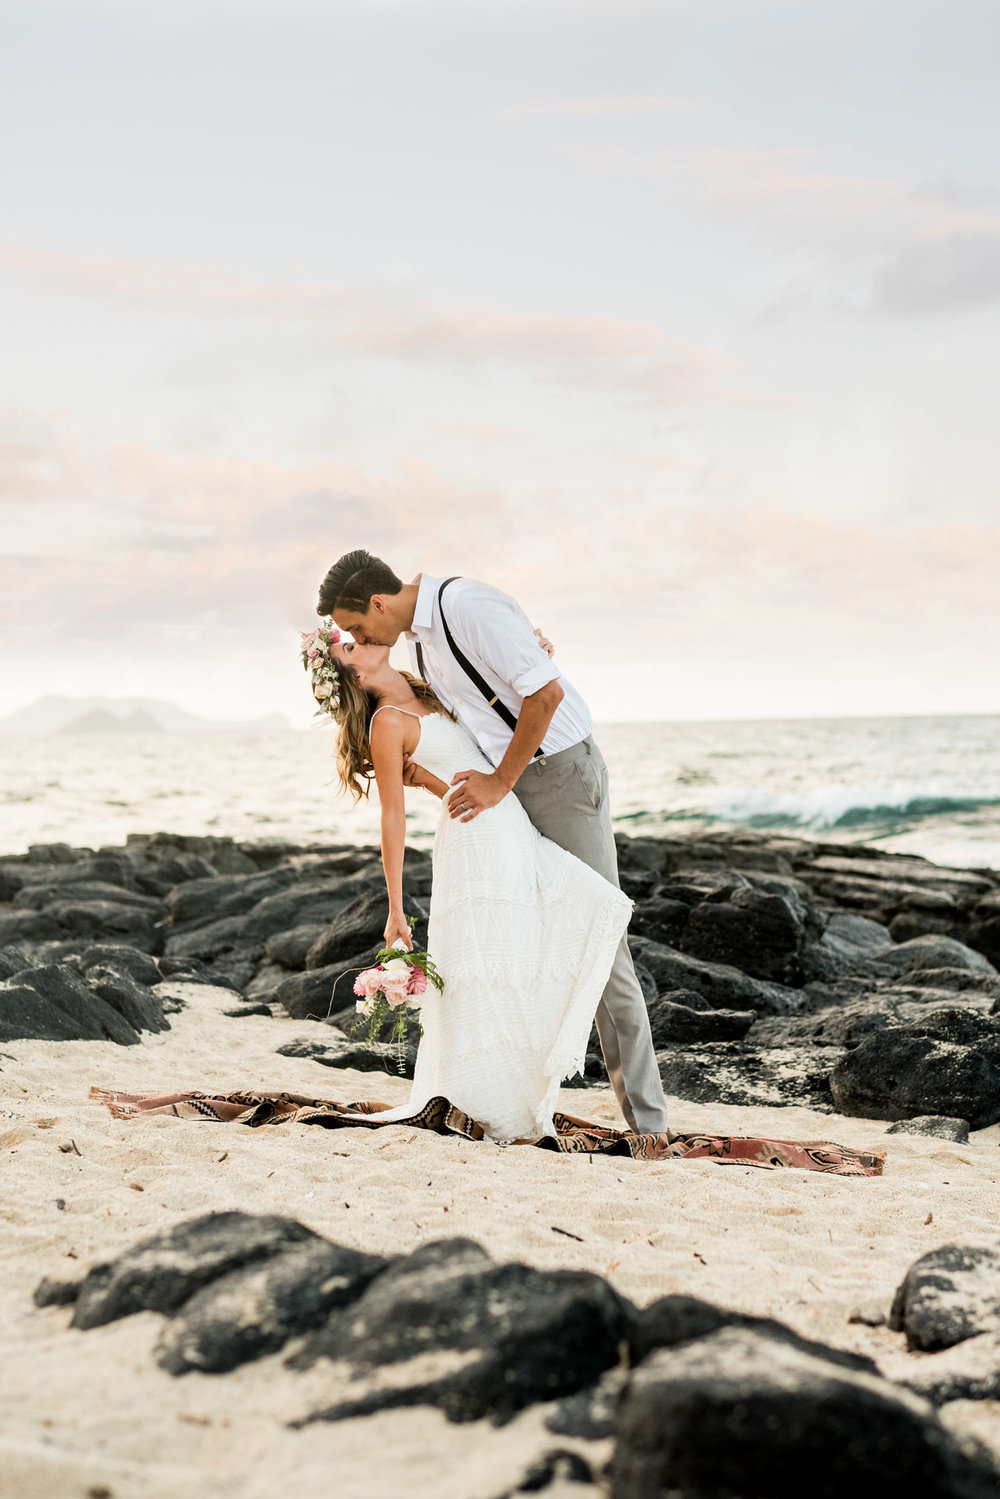 Oahu Wedding and Elopement Photography on Oahu's east side.  Makapuu Tidepools at sunset.